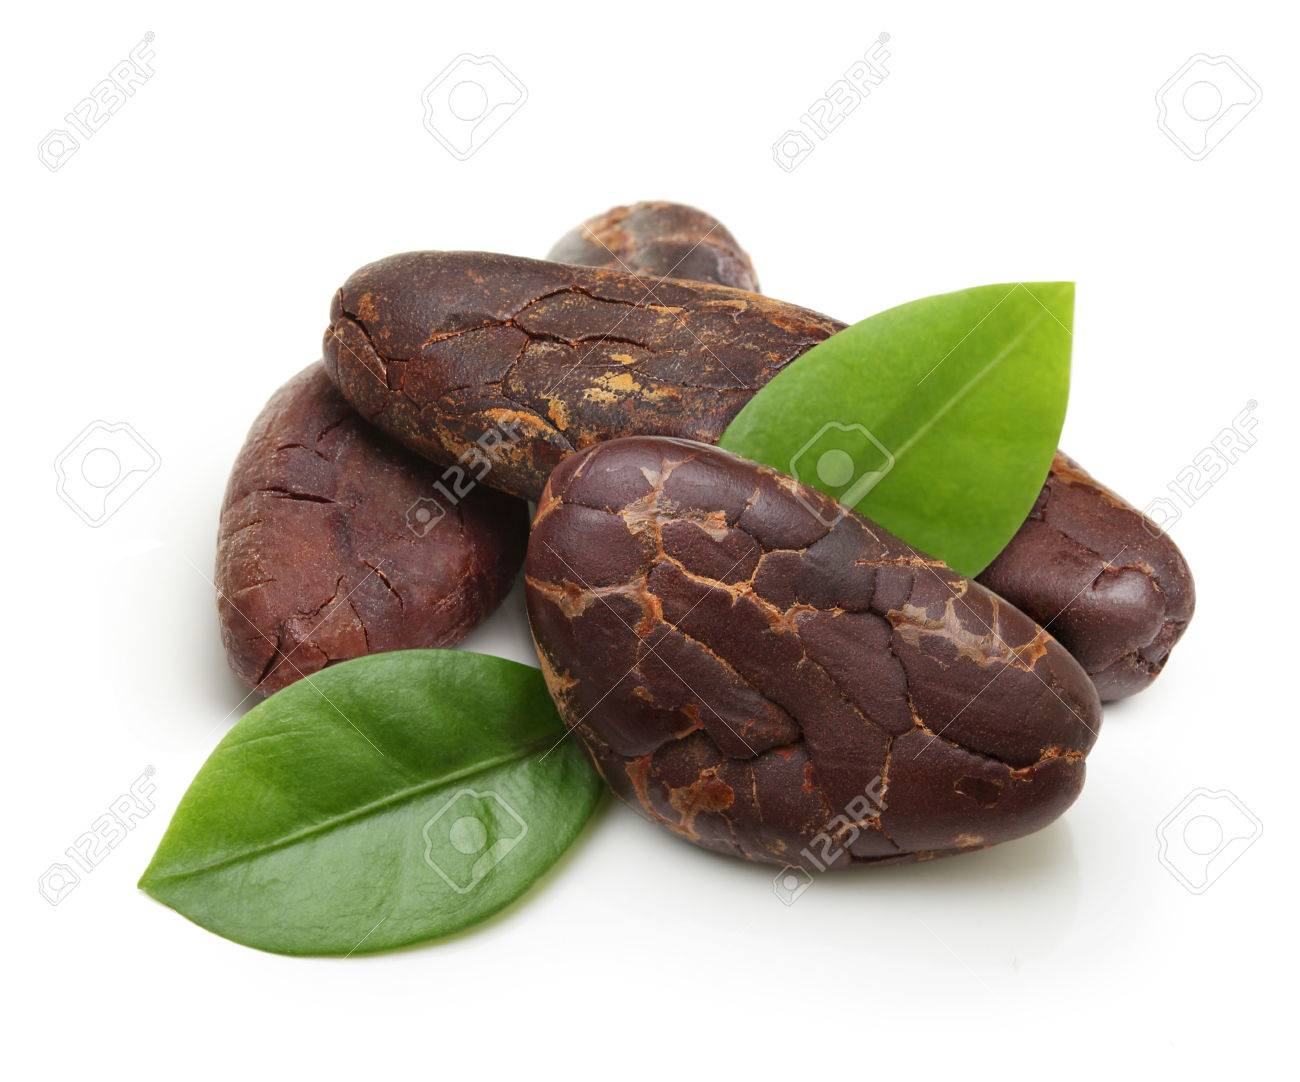 Cacao beans isolated on white background - 61262756